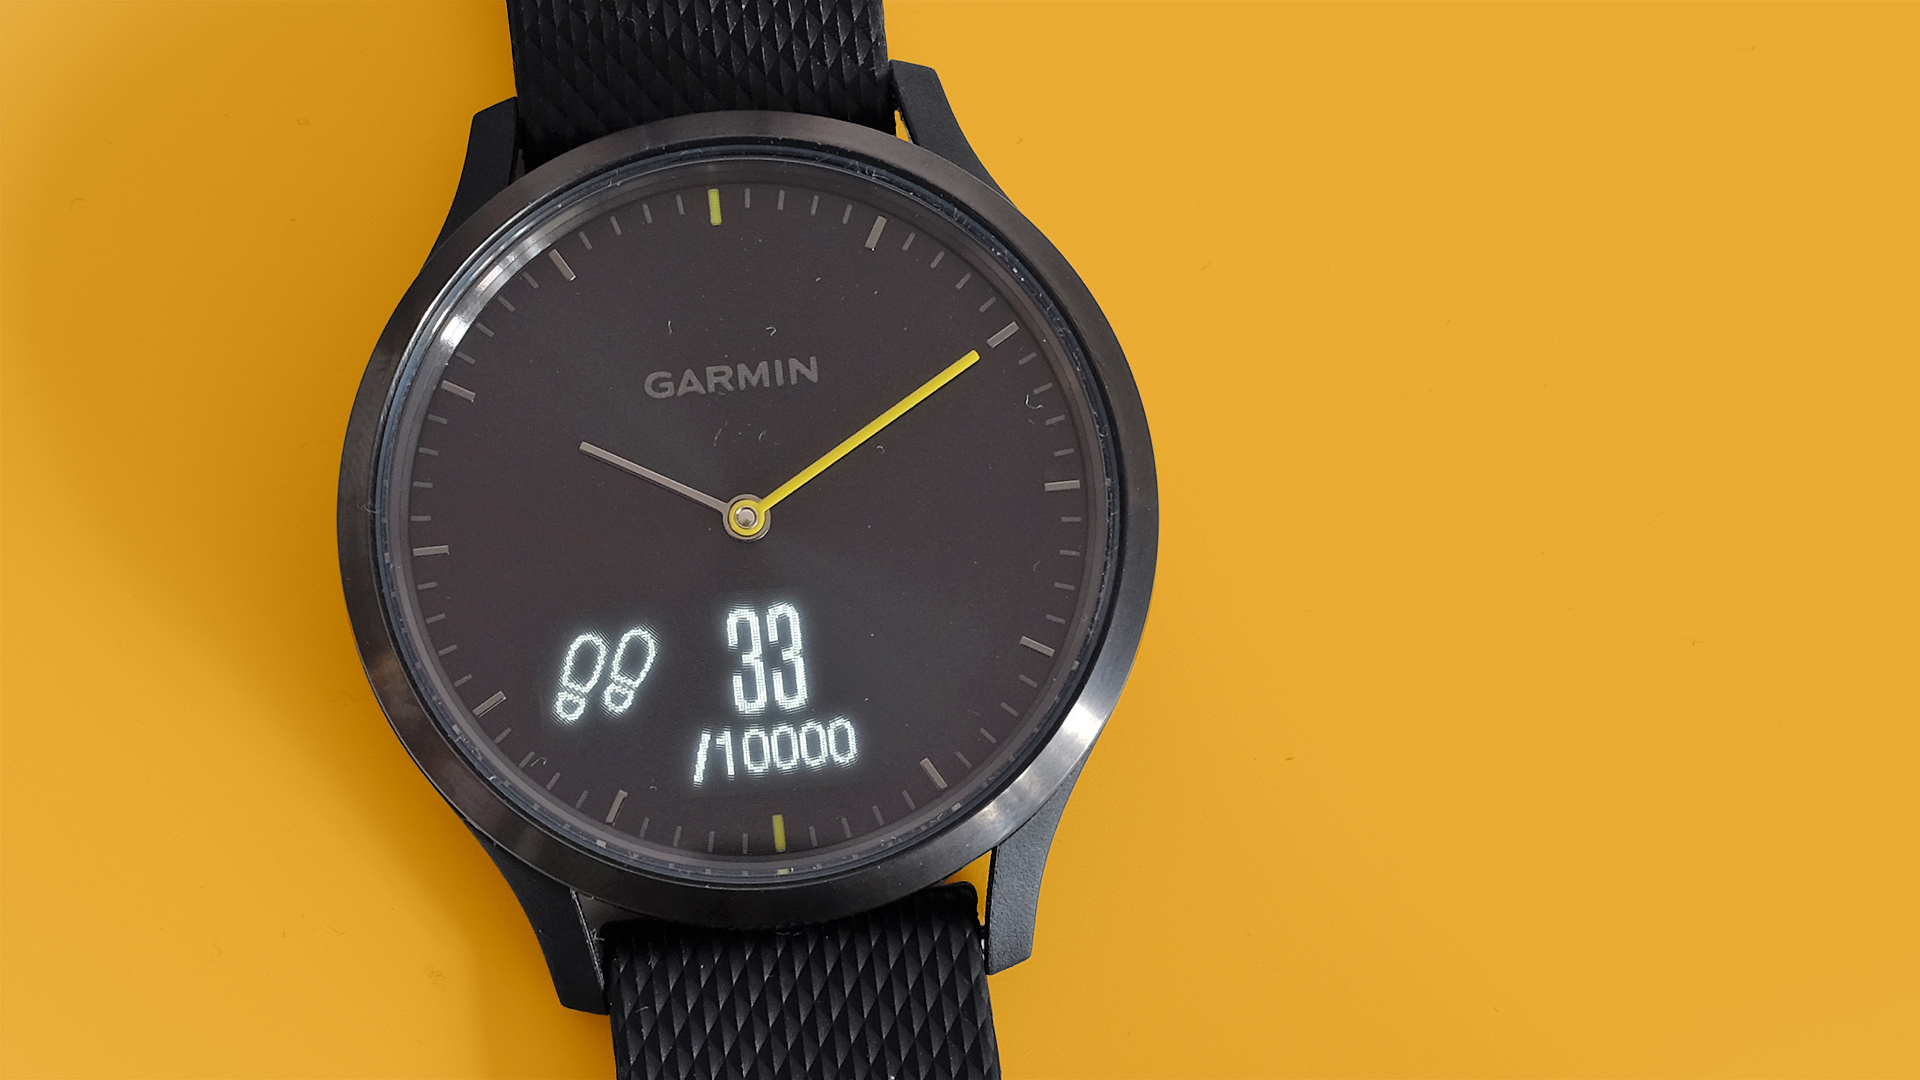 The Garmin Vivomove HR has solid gym tracking features, despite being a hybrid.